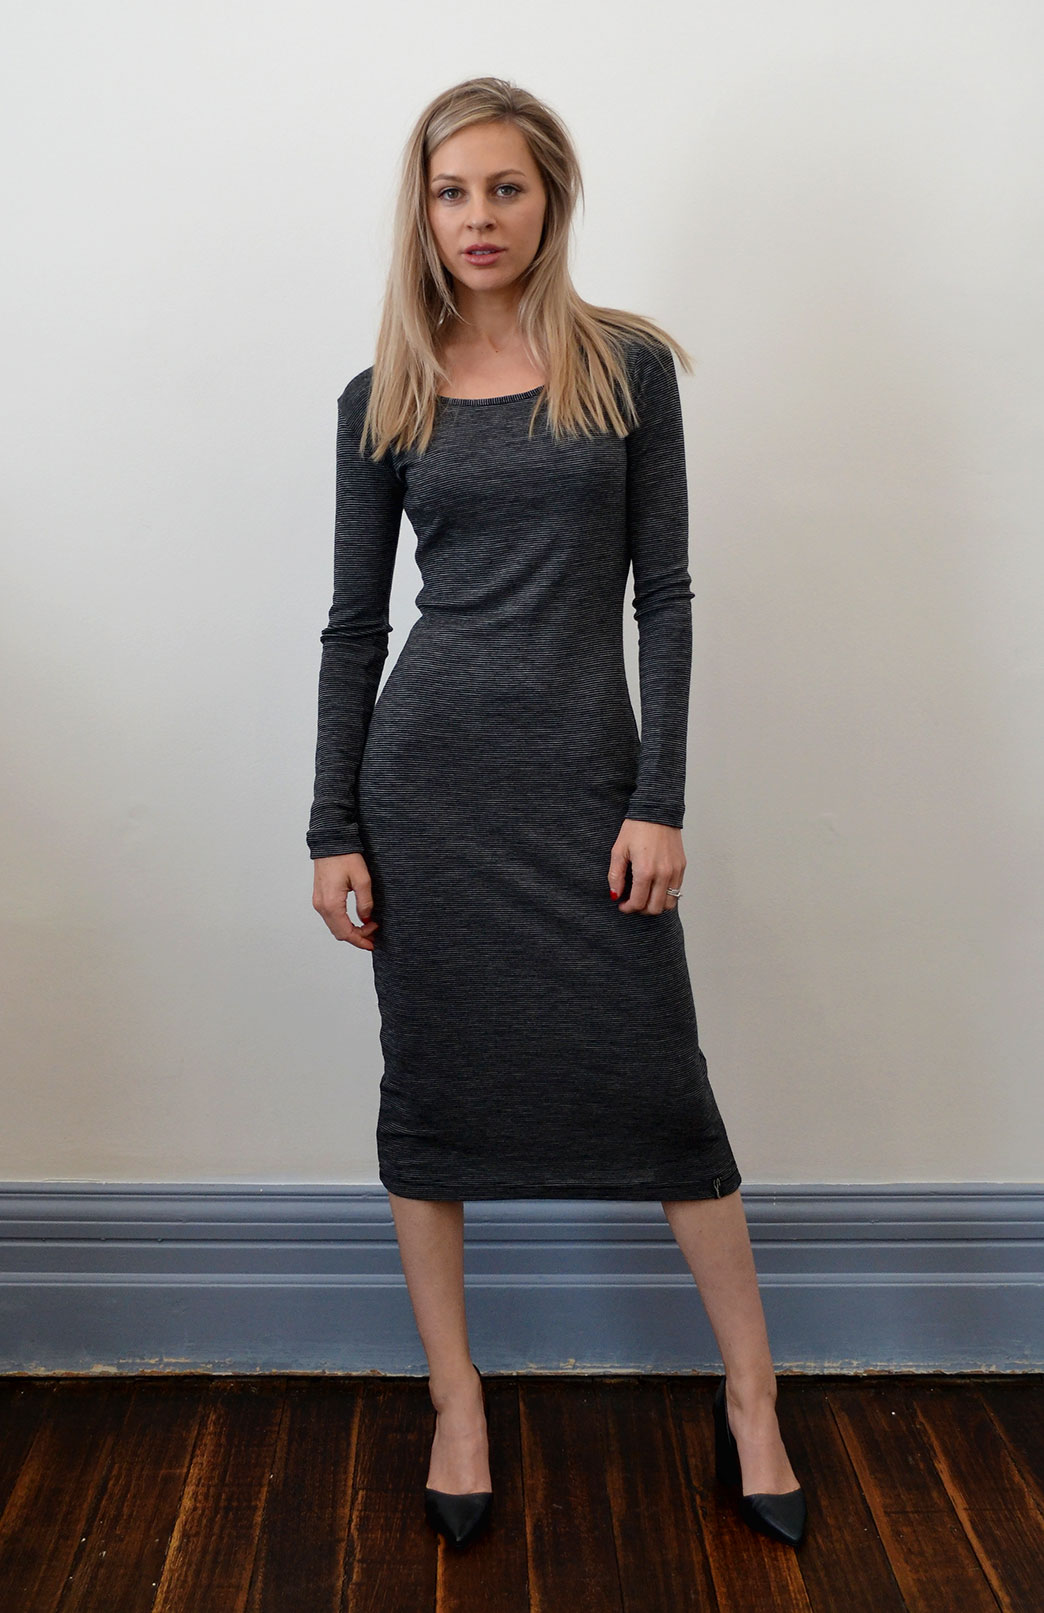 Lana Midi Dress - Women's Black Stripe Long Sleeve Wool Winter Dress - Smitten Merino Tasmania Australia